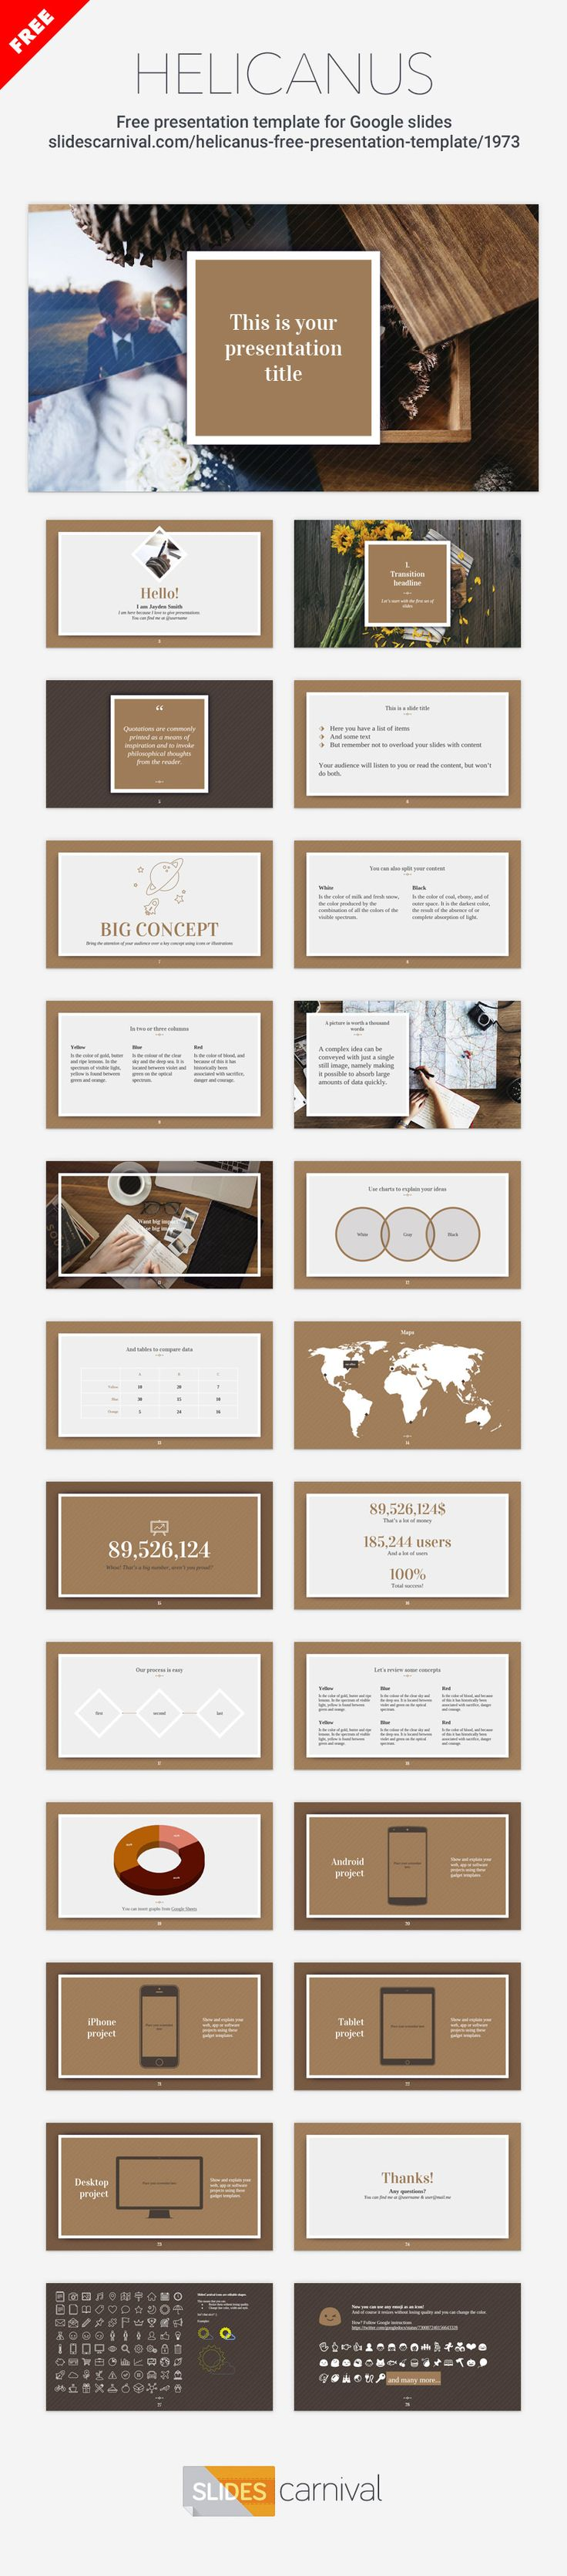 If you're looking for an elegant theme with a classy design and calm color palette, then this one is a perfect choice. Use it to talk about fashion, hotels, travel, cosmetics, etc. If you need to get a professional presentation done by tomorrow, this is a beautiful design to work with.